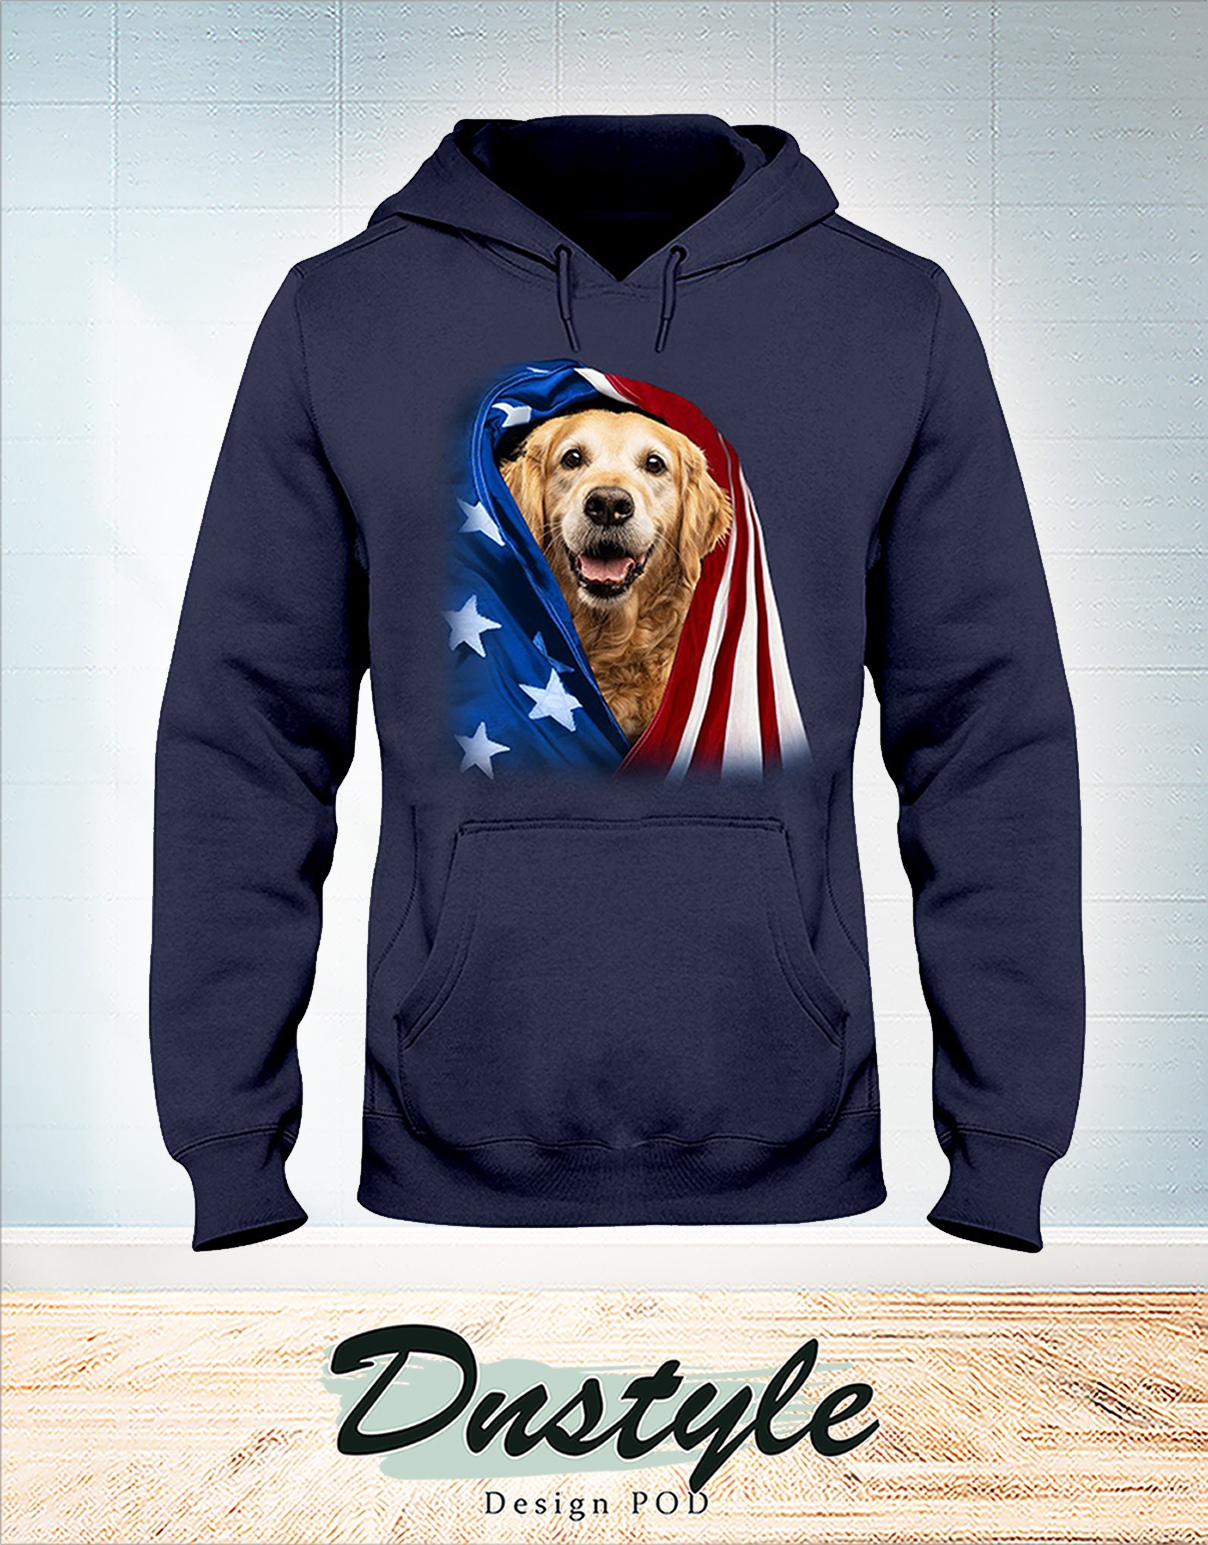 Golden Retriever wrapped in america flag 4th july hoodie